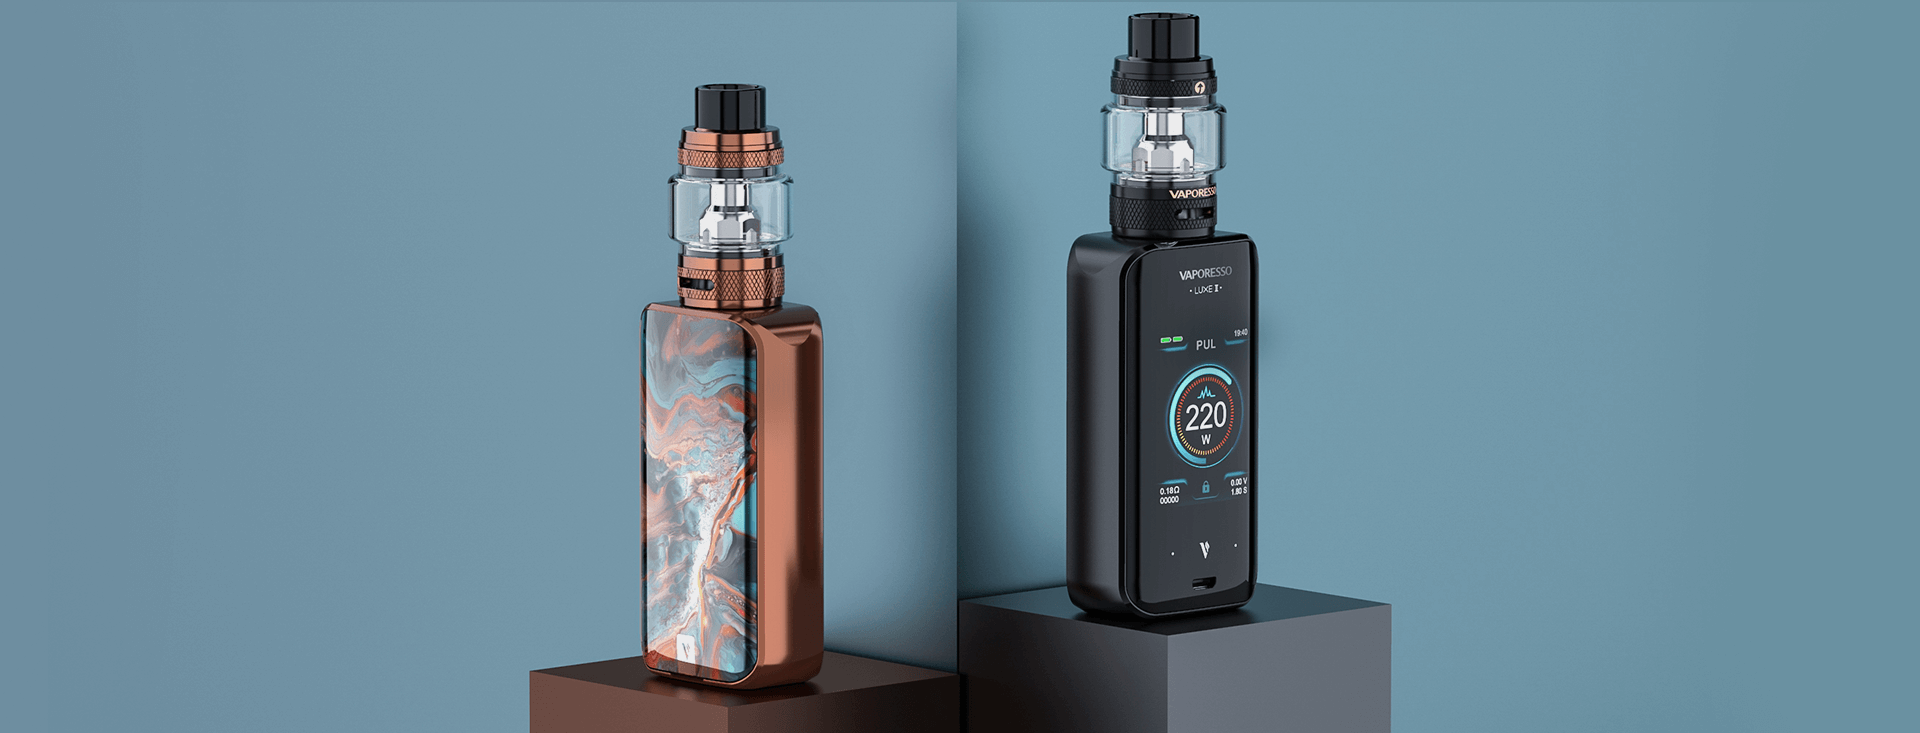 https://www.vaporesso.com/hubfs/imgs/product_img/luxe_2/pc/pc-hl-cover.png